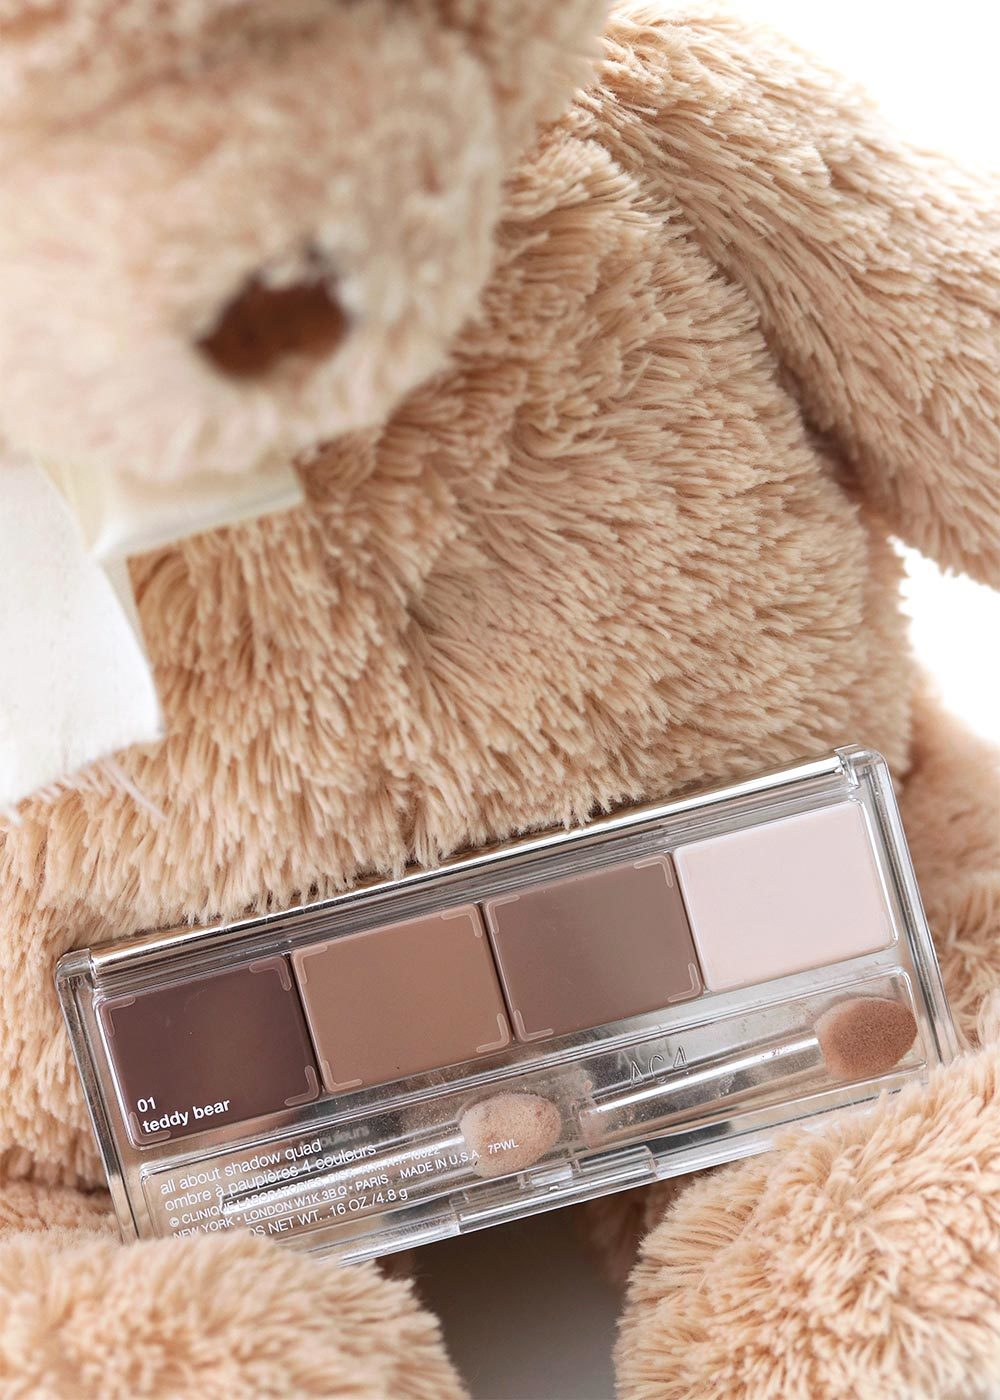 clinique teddy bear